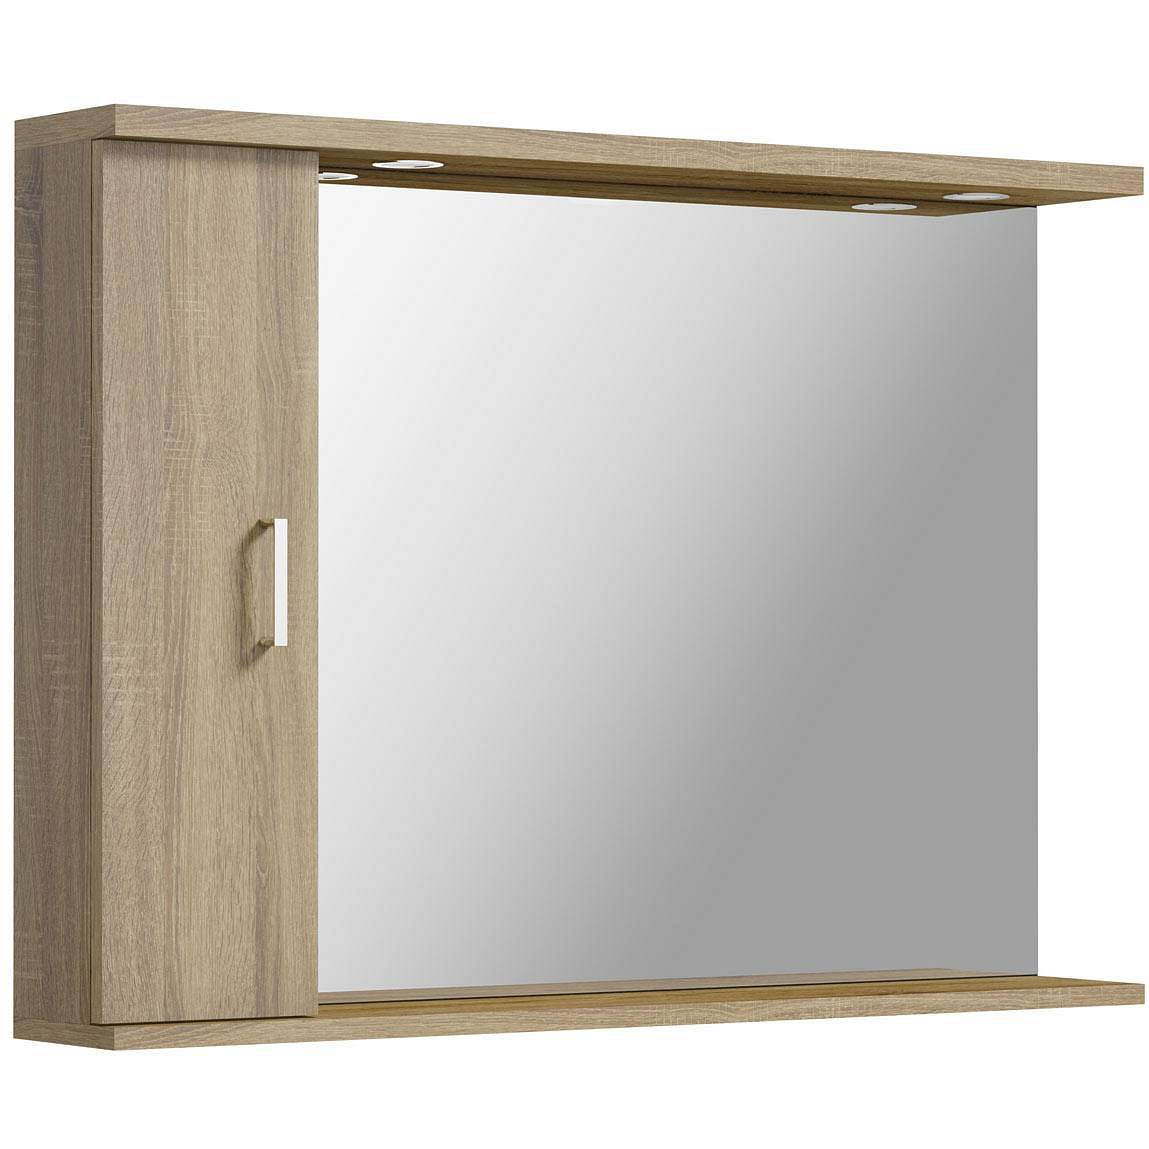 Image of Sienna Oak 105 Mirror with lights